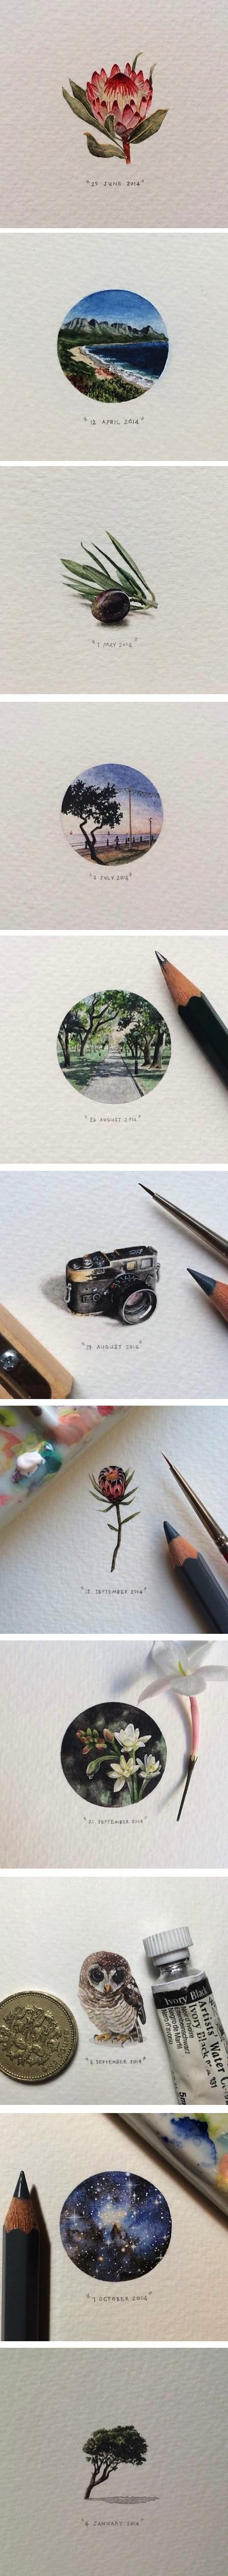 365 Postcards for Ants, Lorraine Loots  such a pretty project